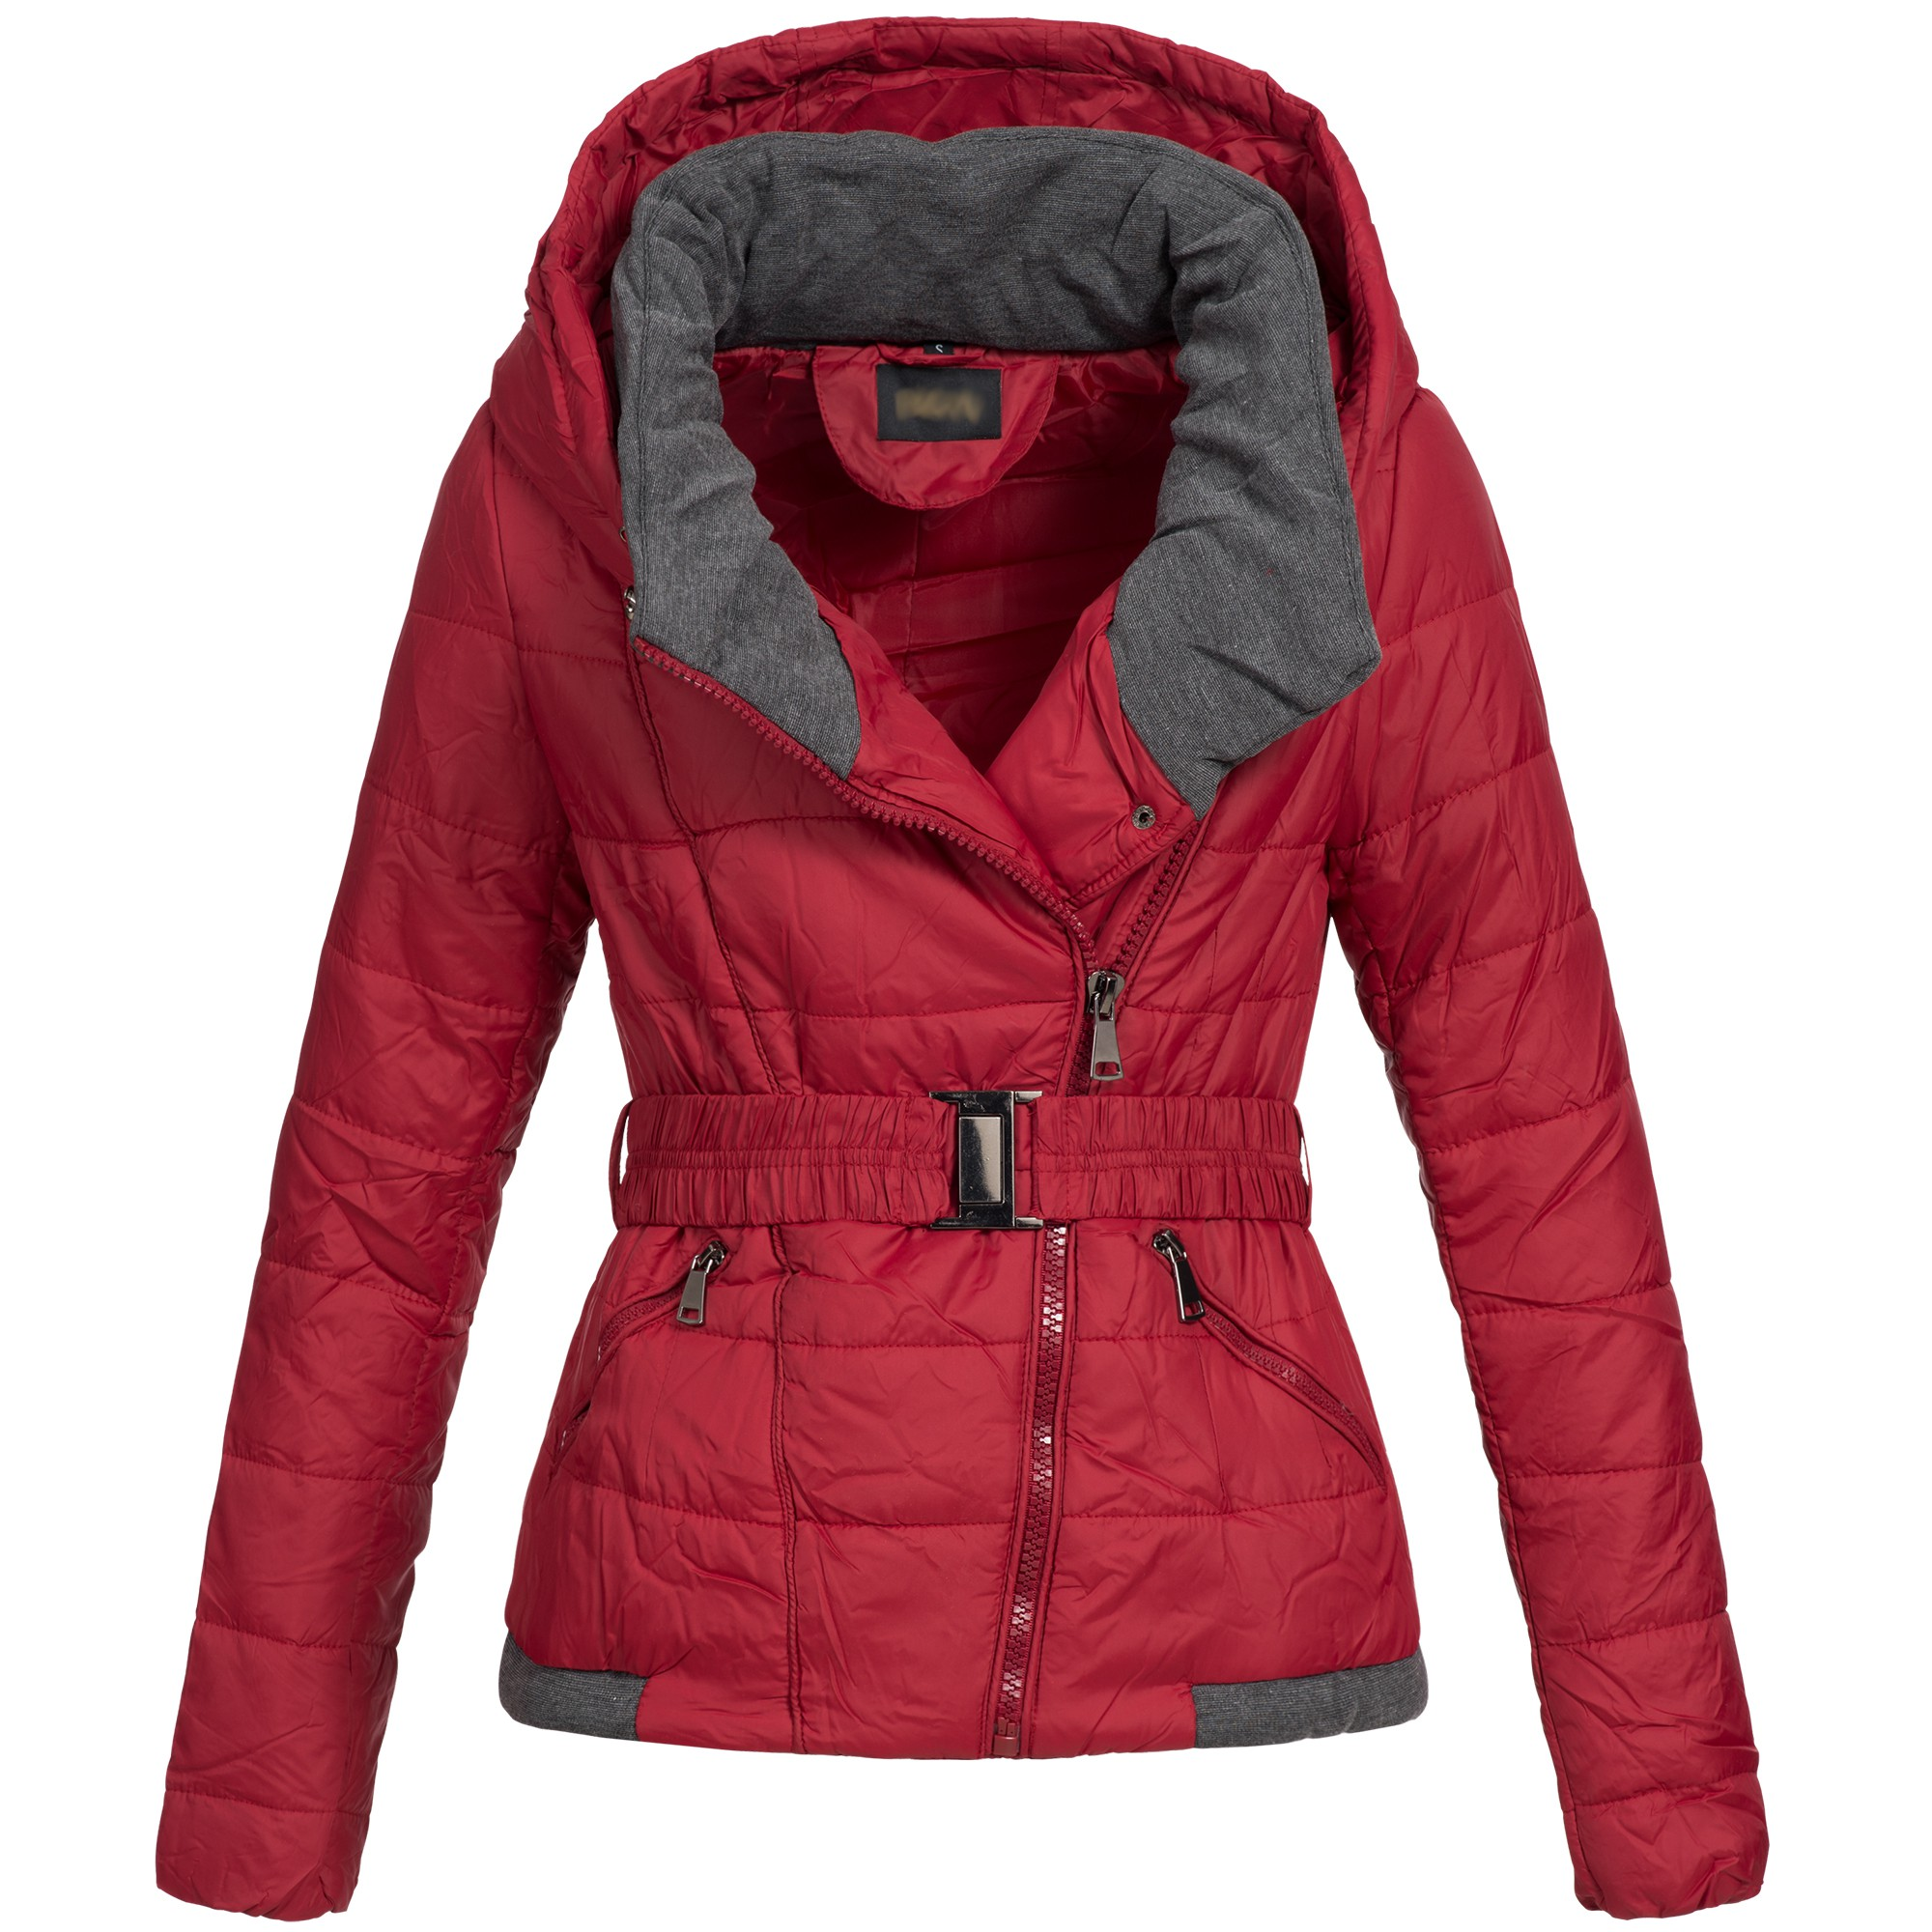 dong damen jacke winterjacke parka steppjacke mantel 16988 rot gr s neu ebay. Black Bedroom Furniture Sets. Home Design Ideas